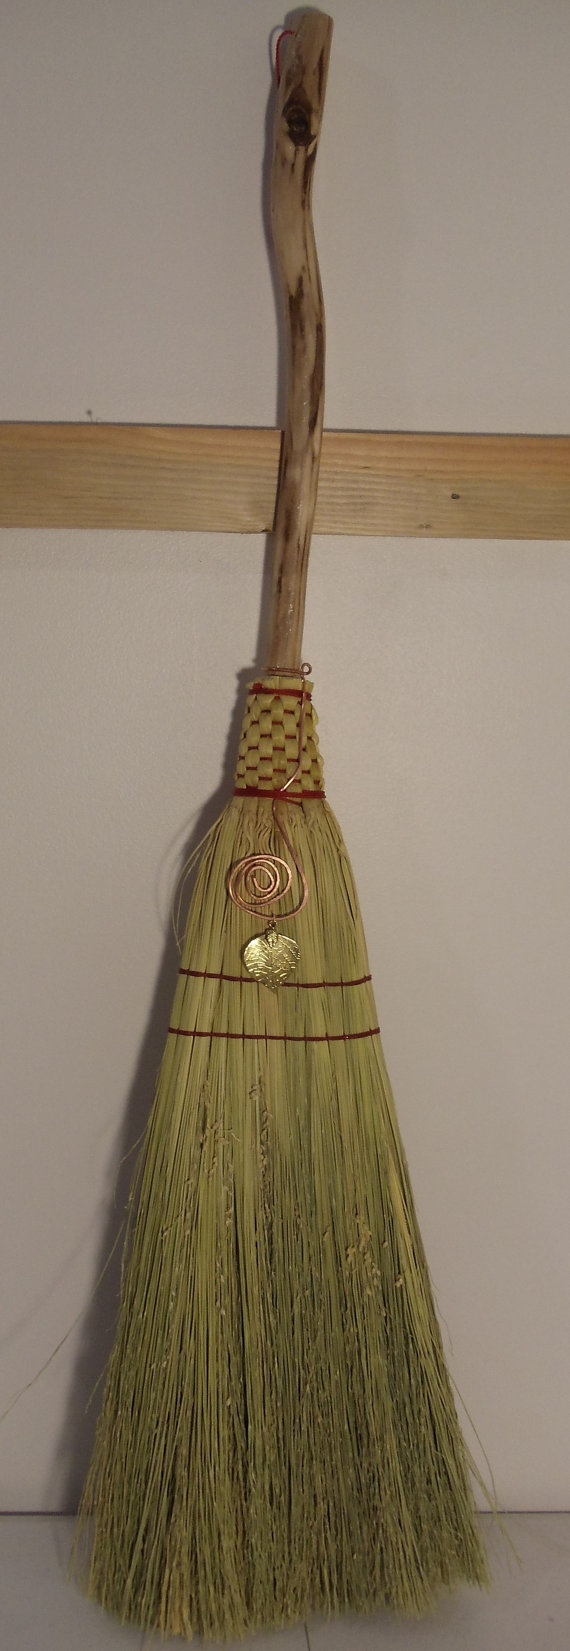 410 best images about besome and brooms on pinterest for Straw brooms for crafts